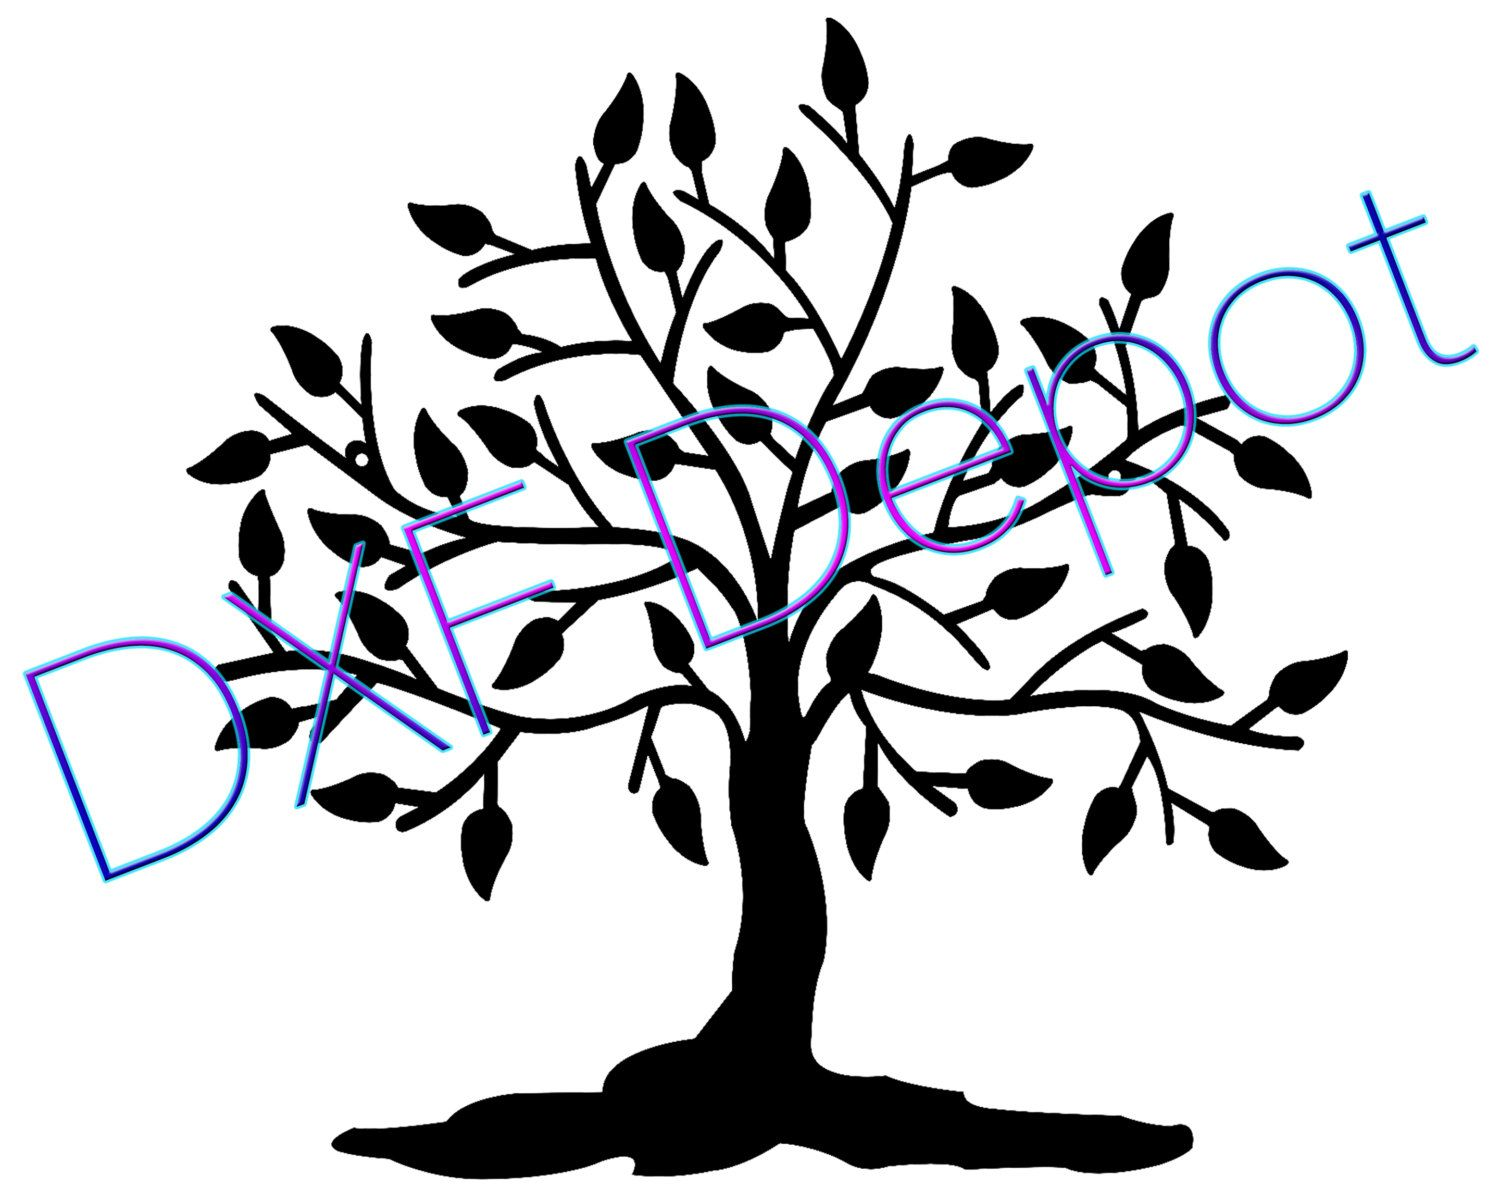 tree of life dxf format cnc cut file vector art clip art rh pinterest com tree of life vector design tree of life vector art